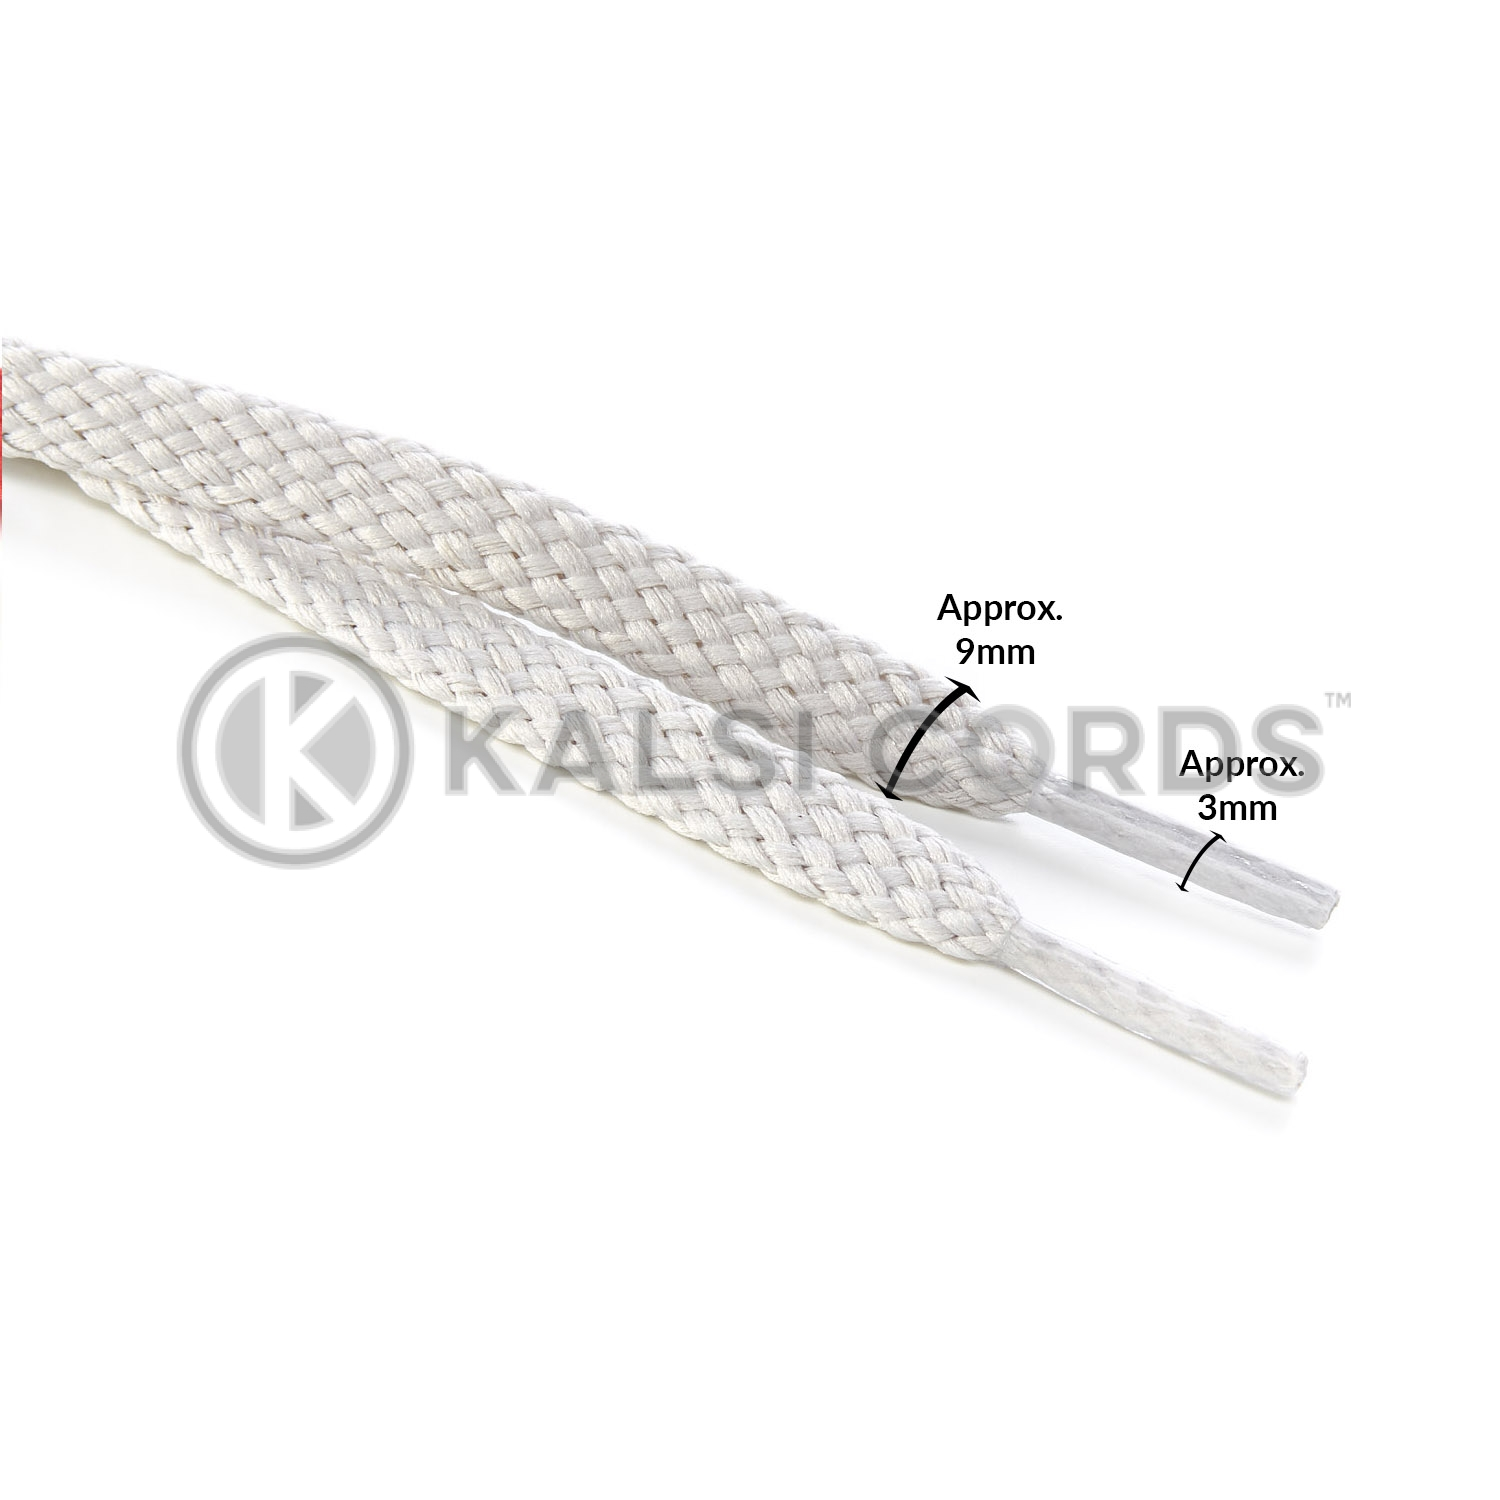 R1472 Seagrass Sports Flat Shoe Laces Kalsi Cords